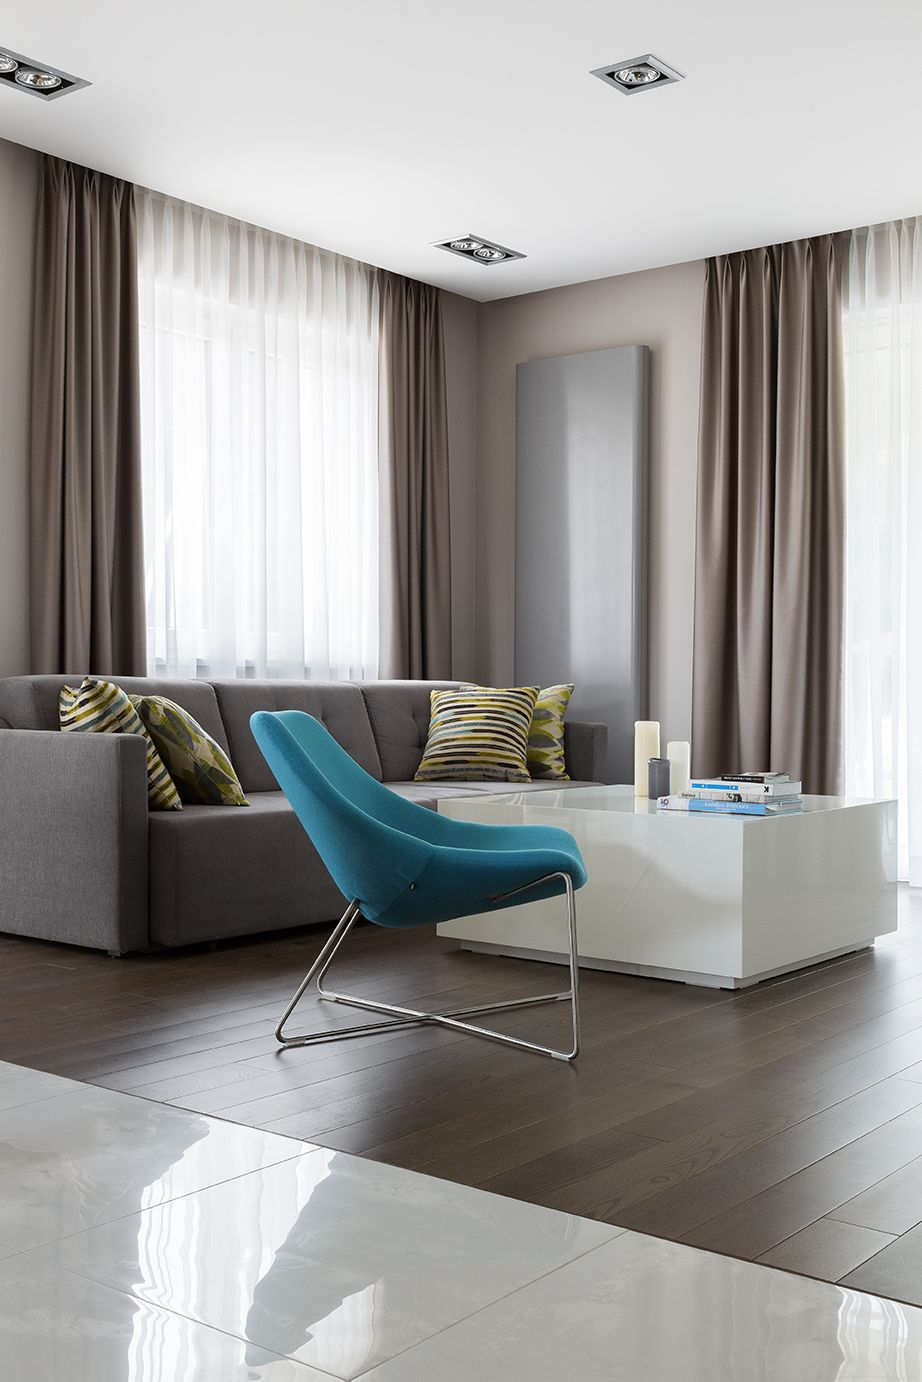 Colourful Modern Living Room, Turquoise Armchair, White Coffee Table, Grey  Living Room,